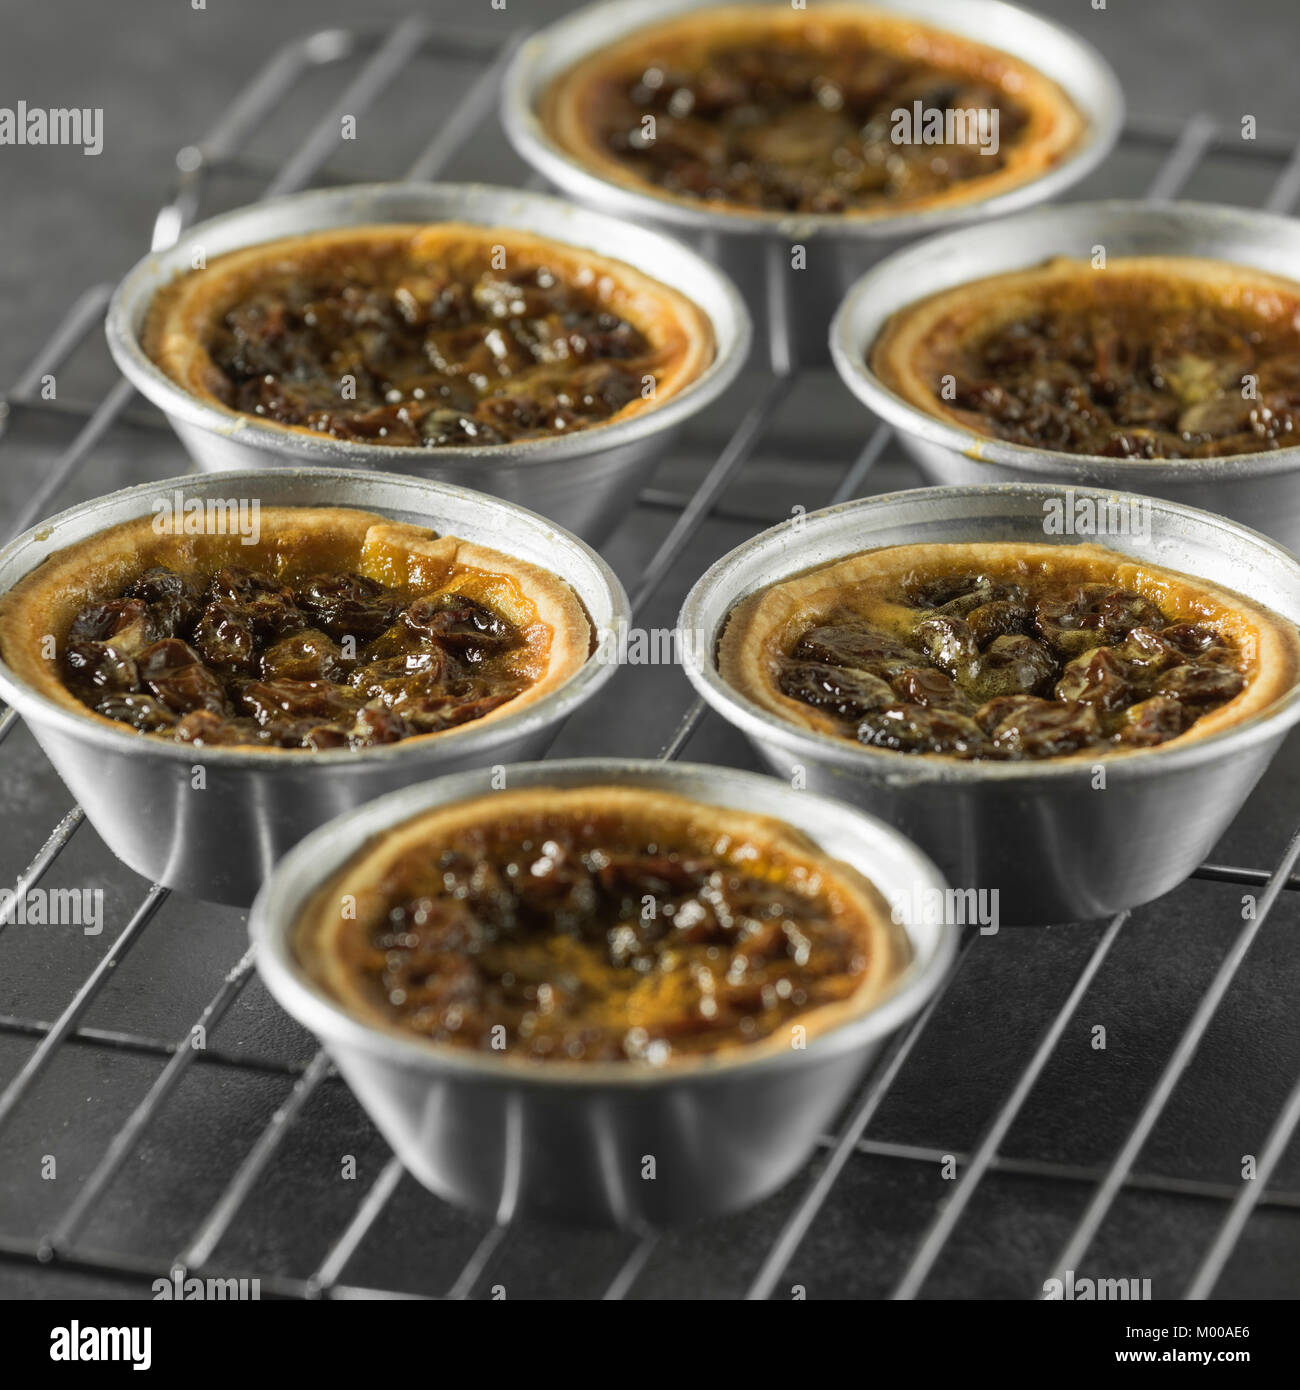 Canadian butter tarts. Canada Food - Stock Image